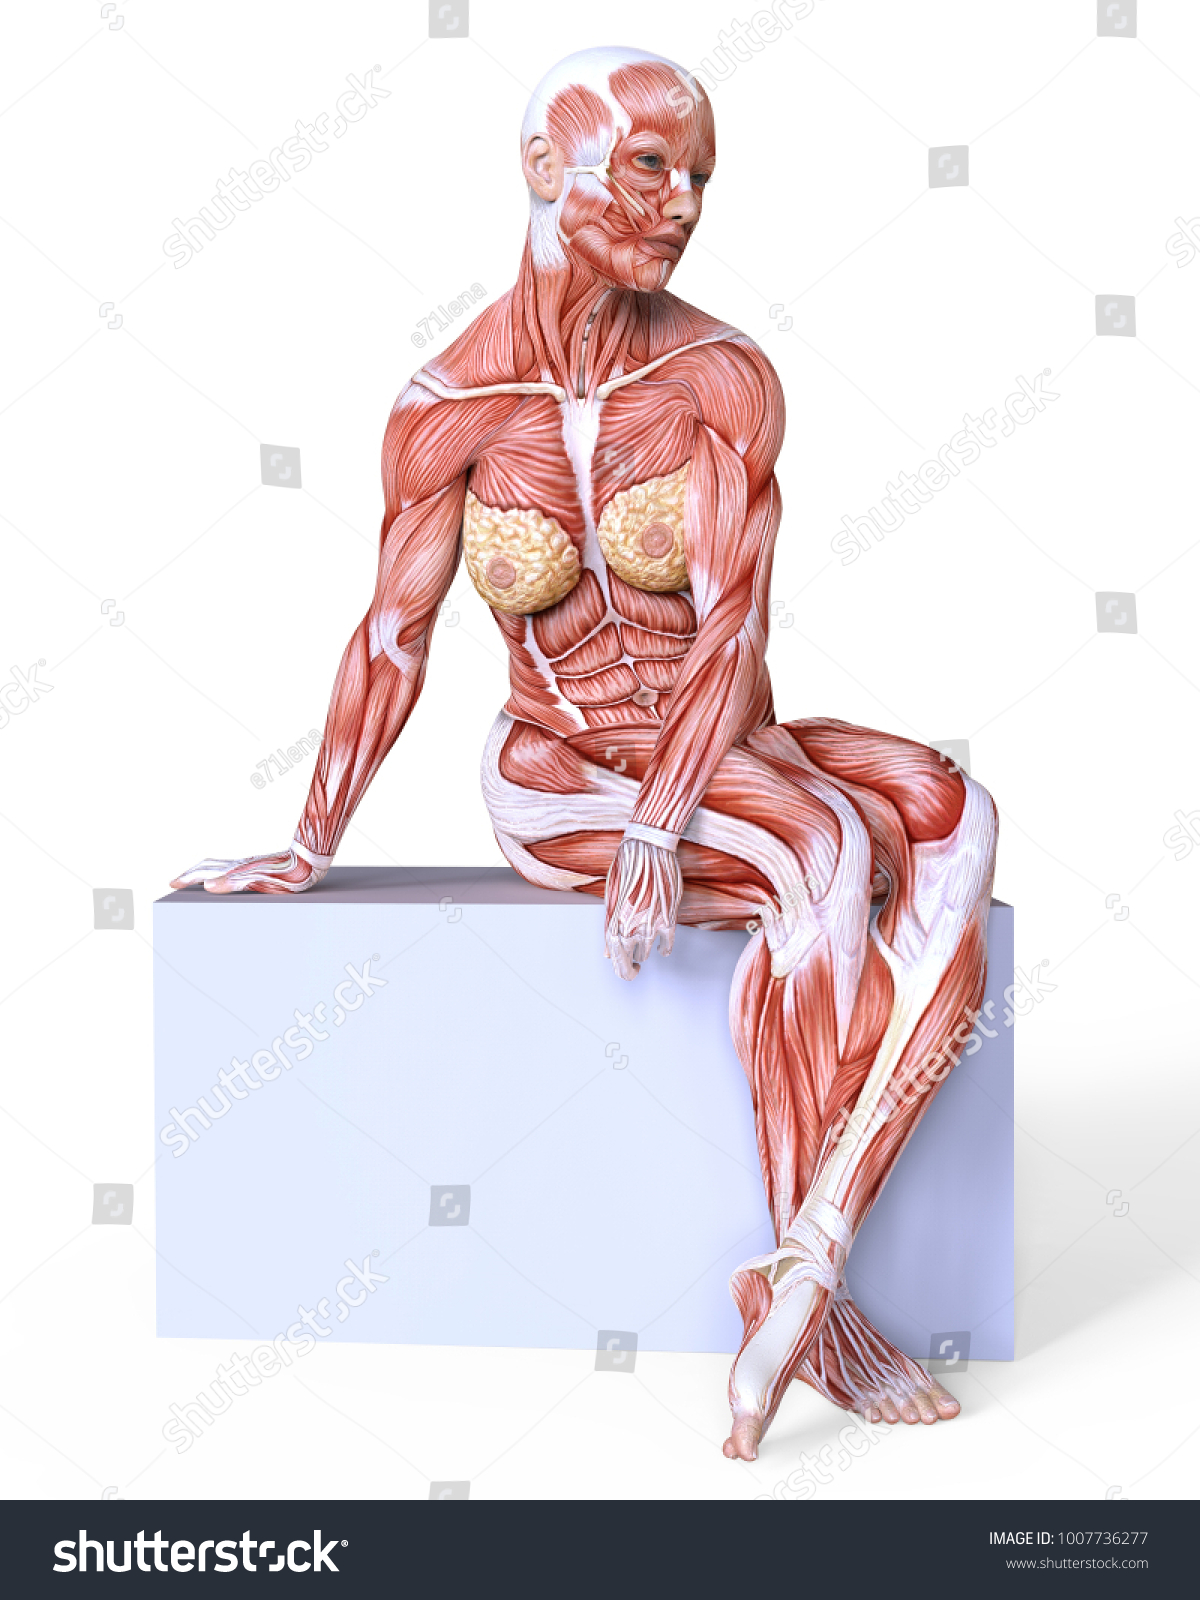 Female Body Without Skin Anatomy Muscles Stock Illustration